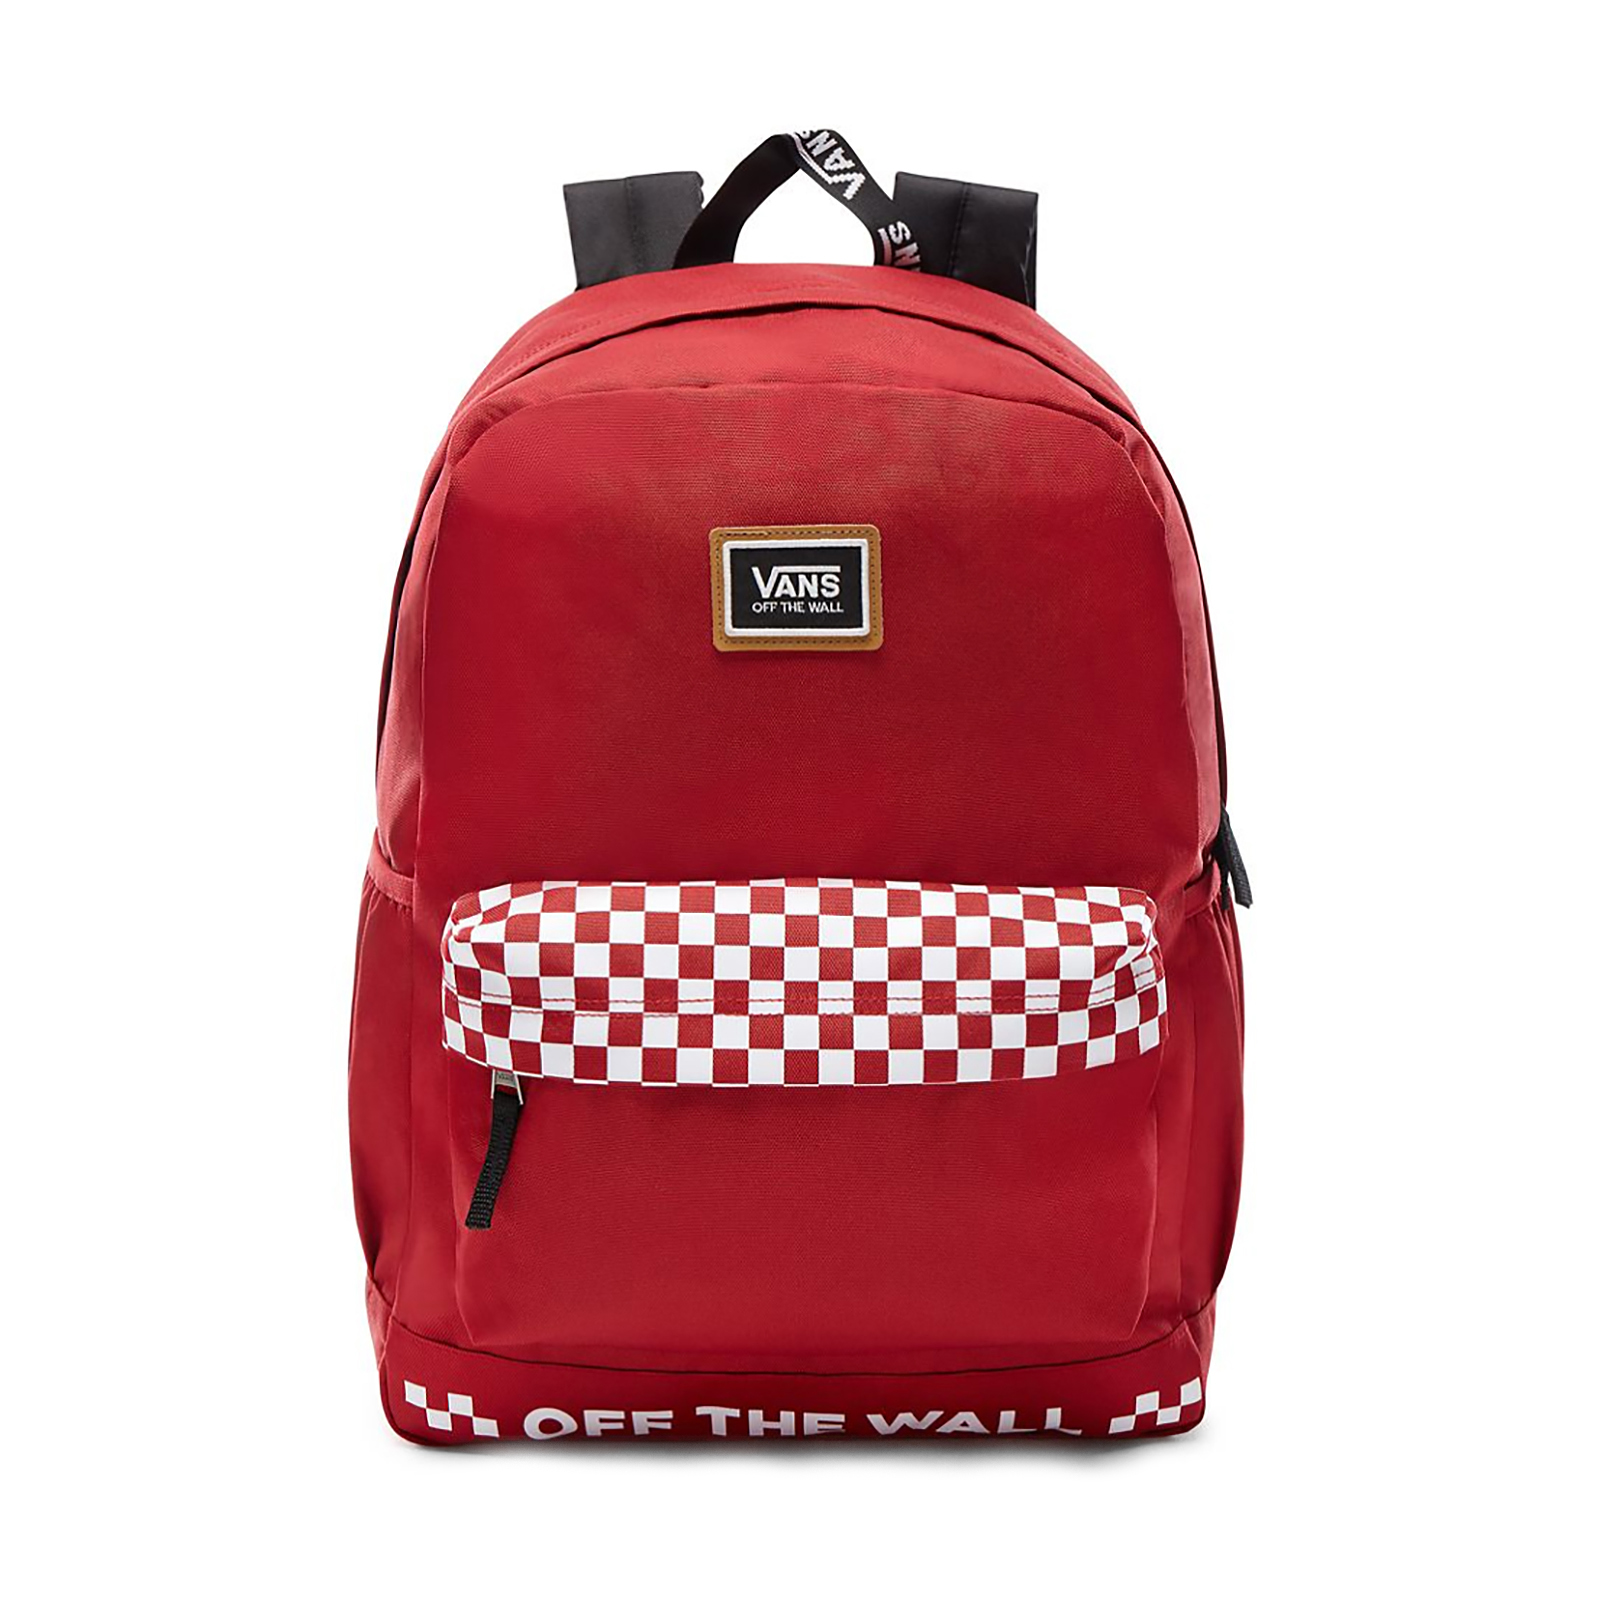 VANS Scooter Sporty Realm Plus Womens Backpack for sale online